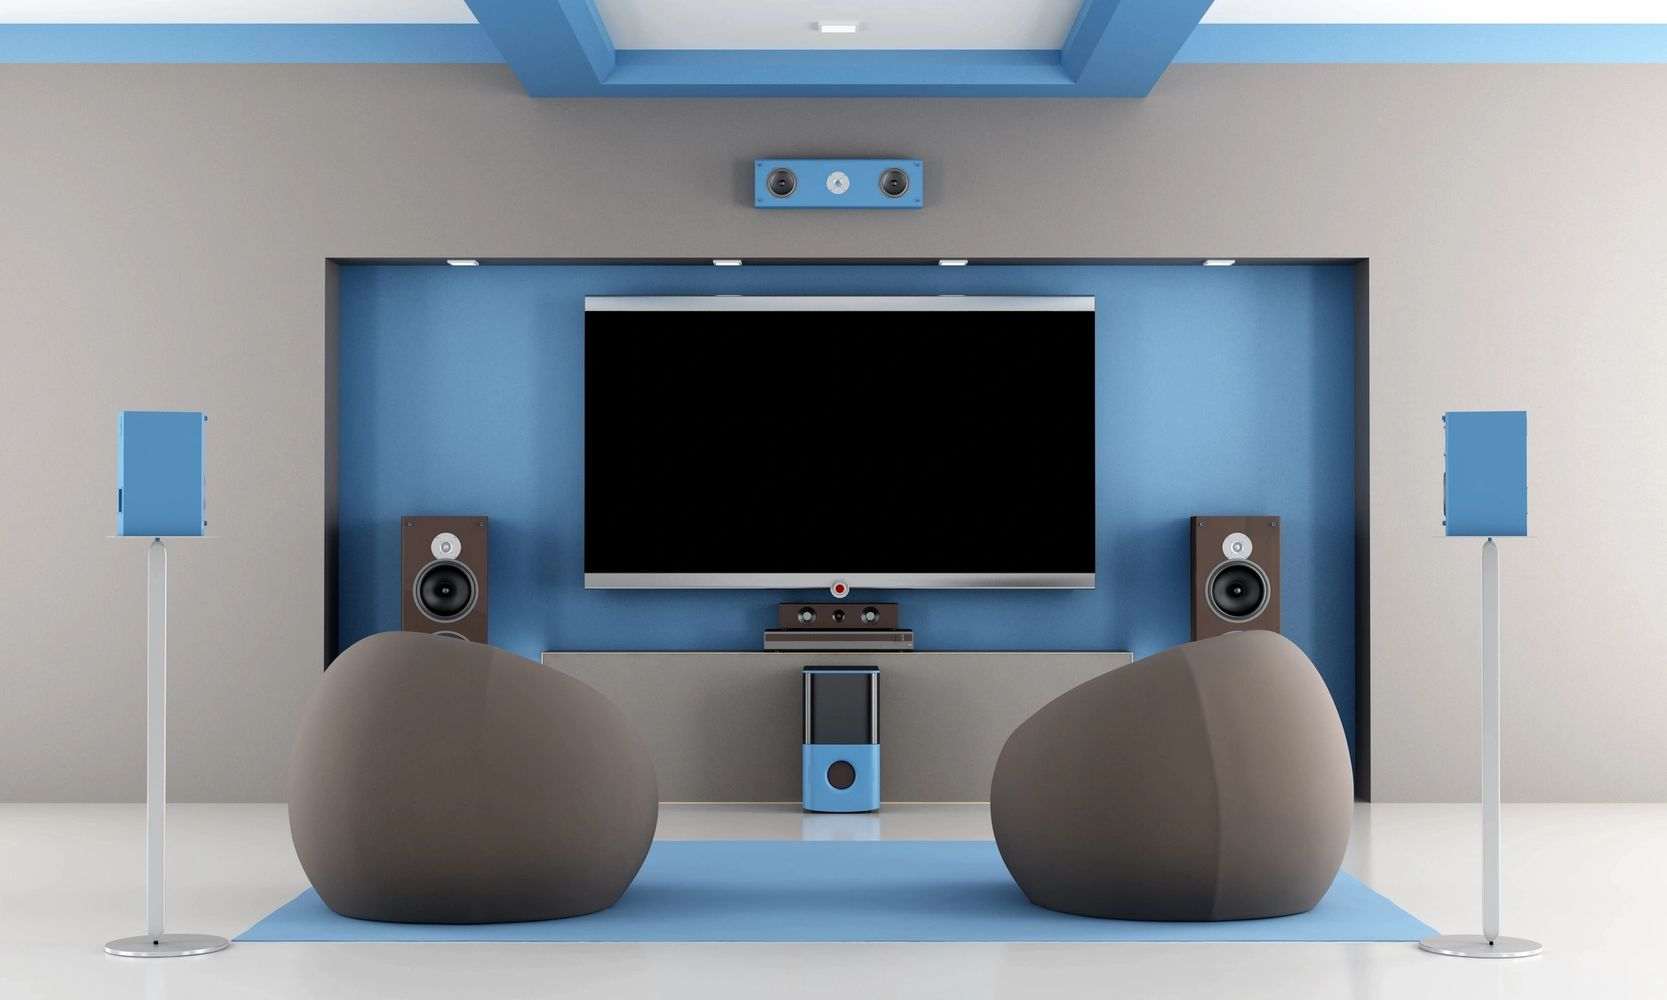 Home Theatre Installation, Smart Home Integration, Home Automation Installation